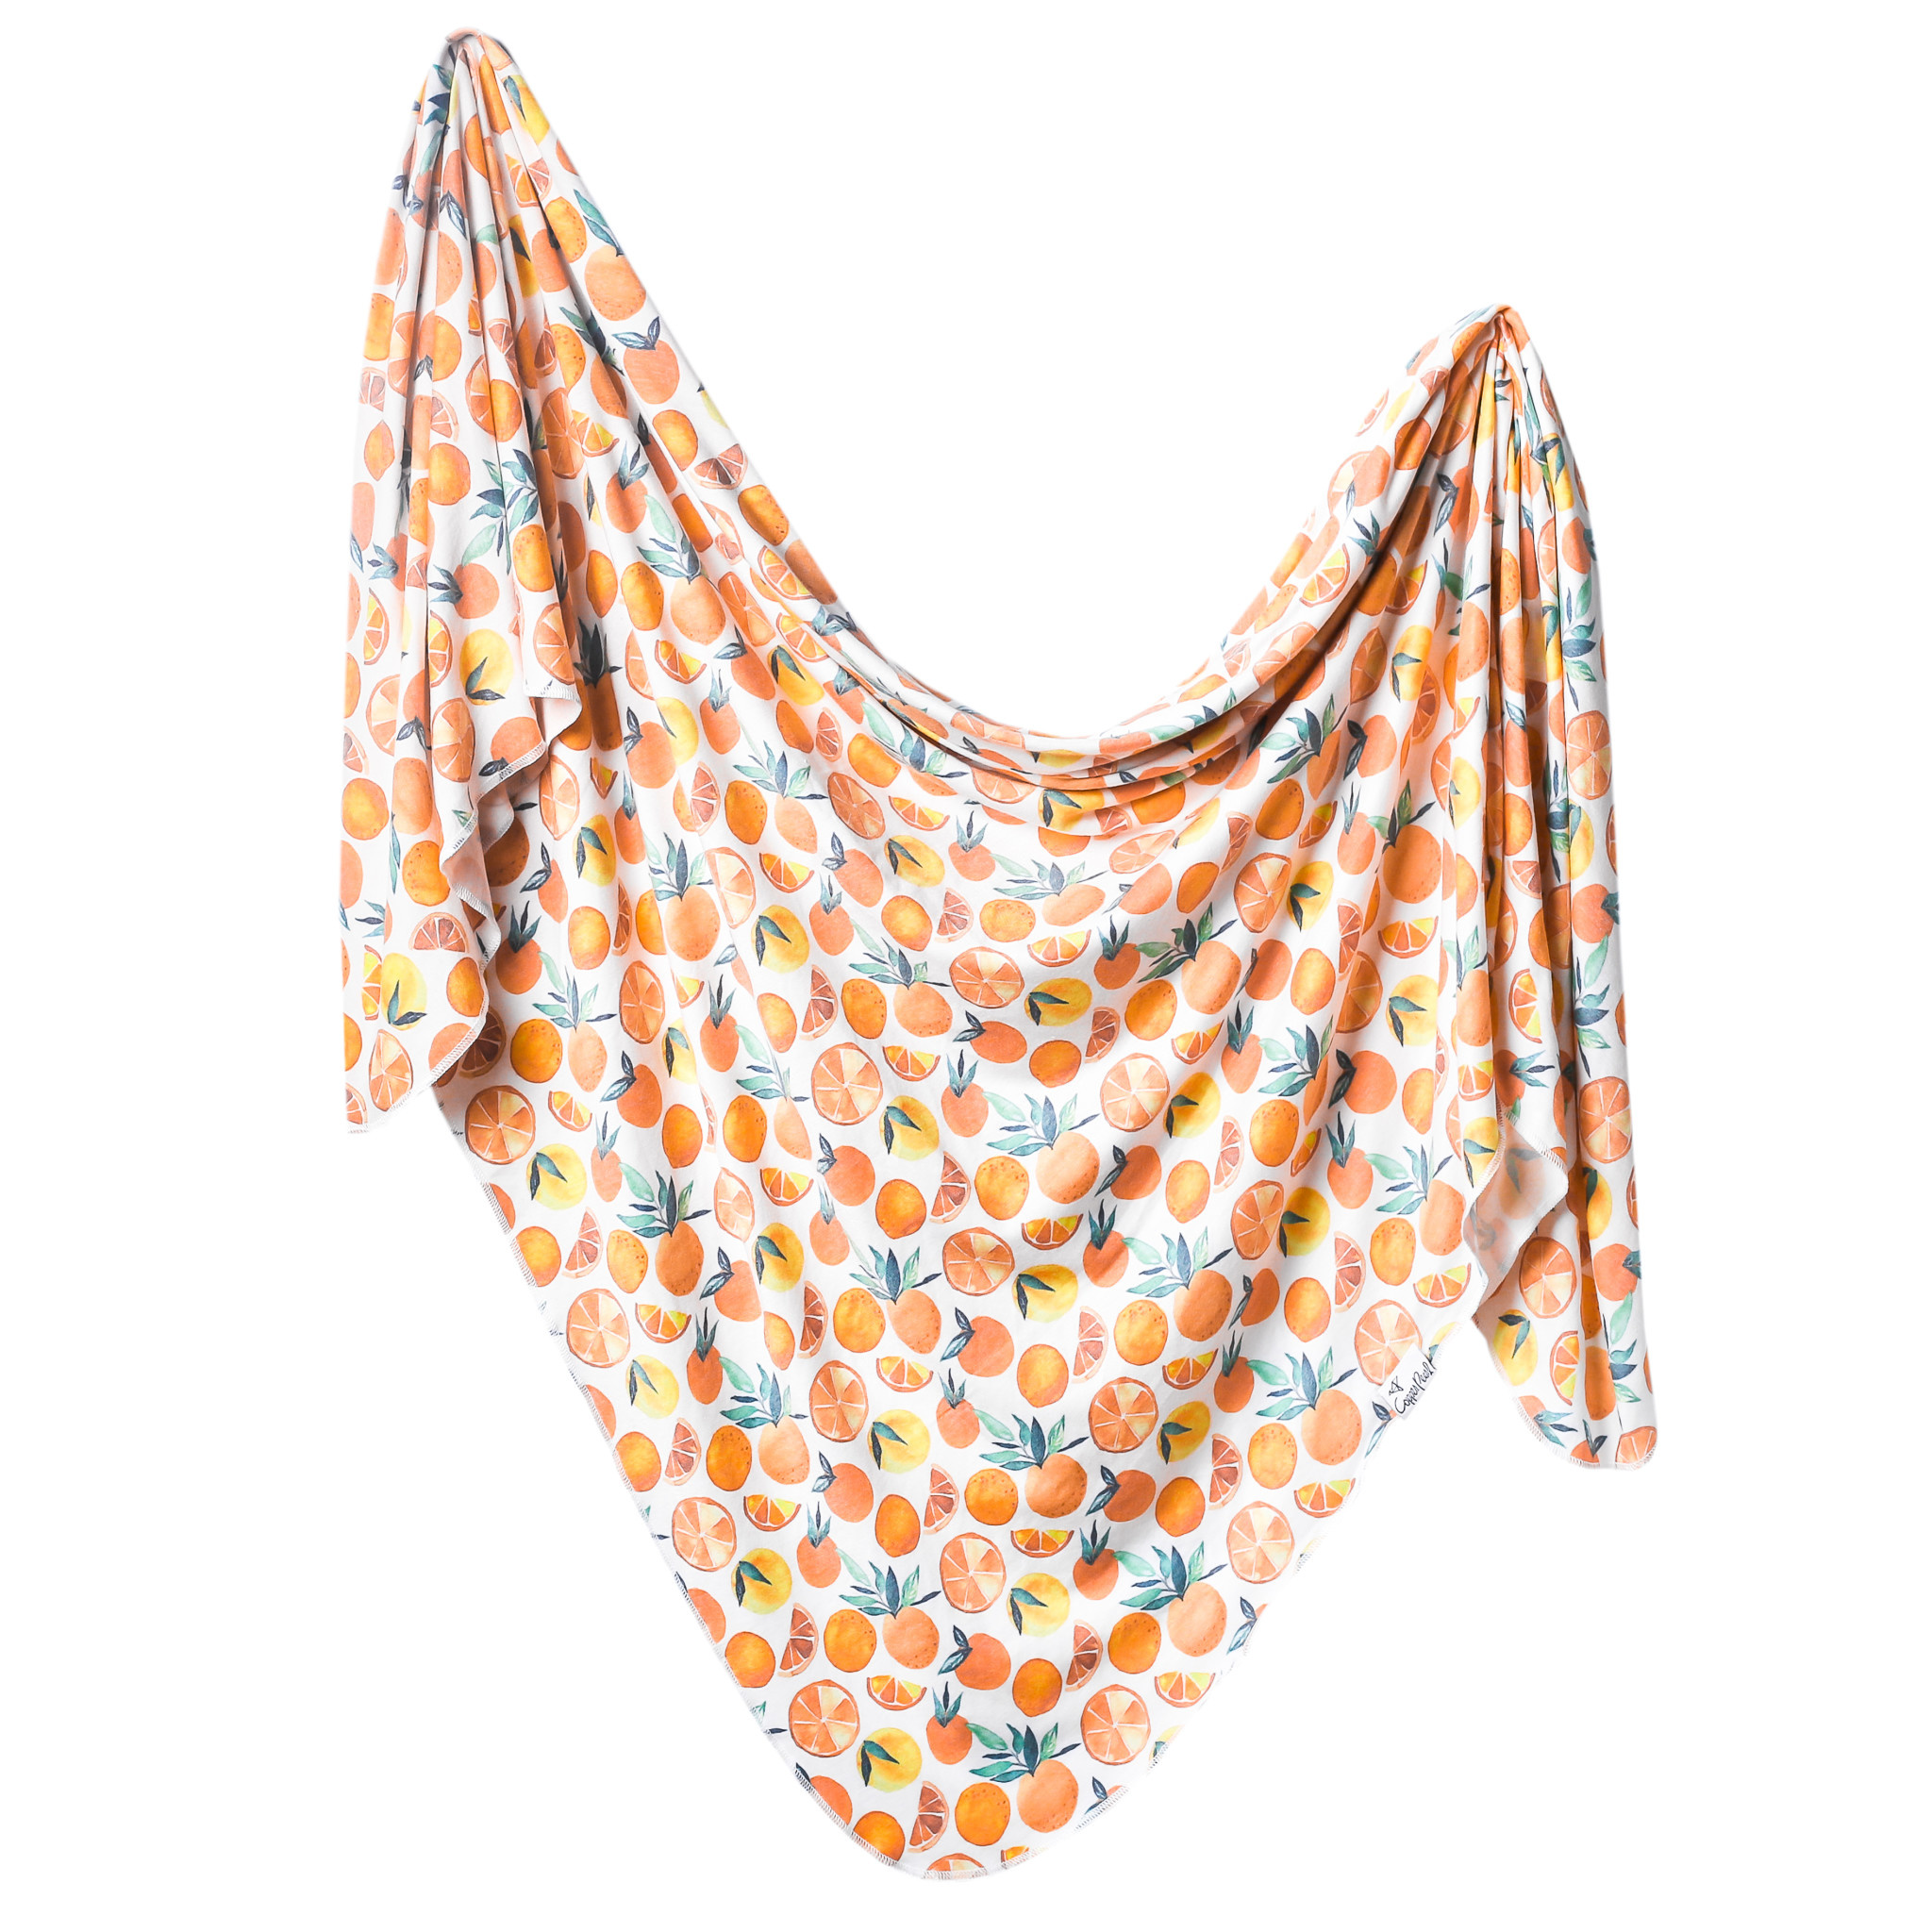 Copper Pearl Knit Swaddle Blanket Citrus